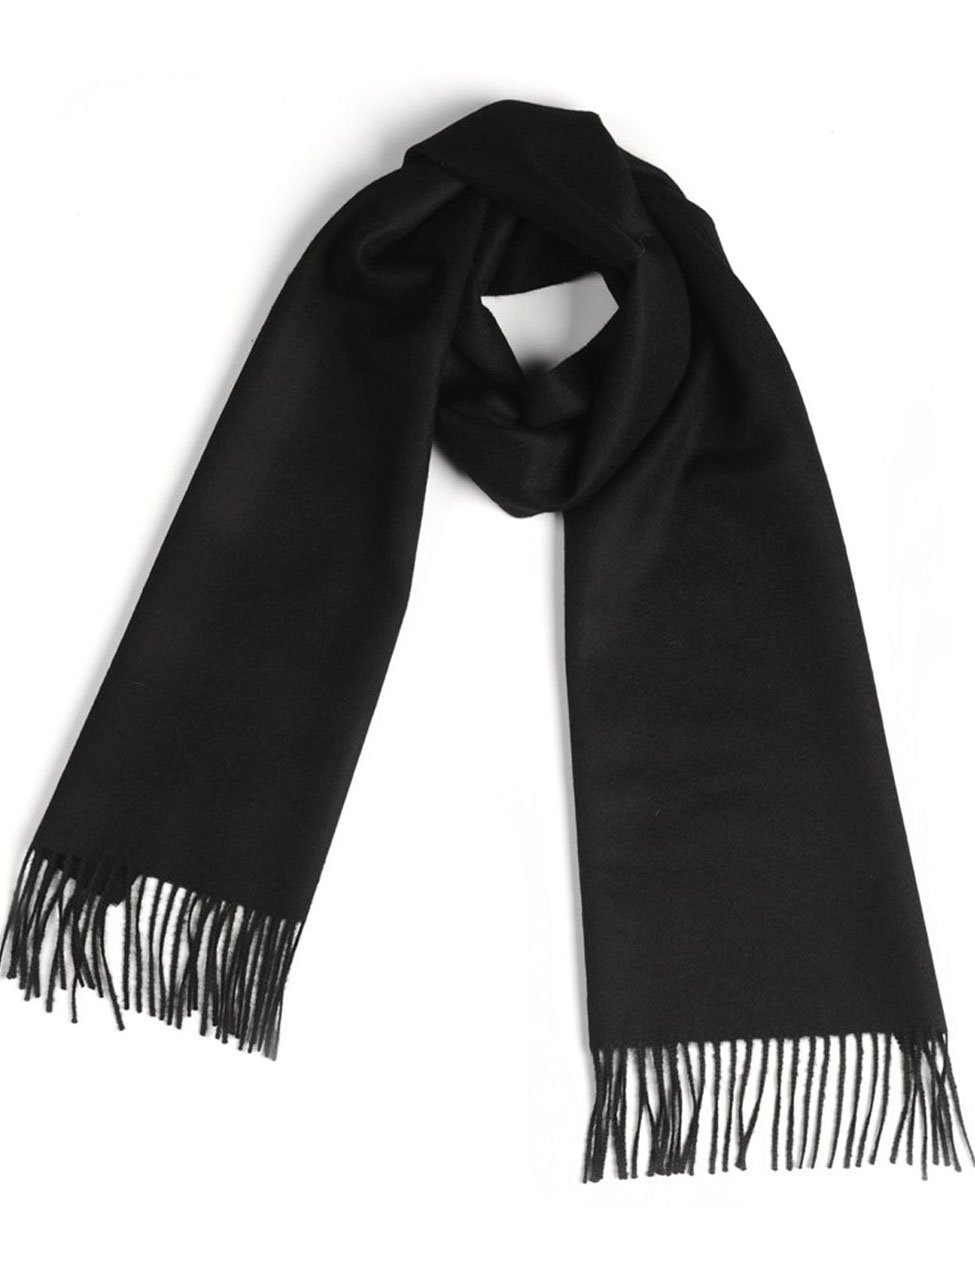 Luxury 100% Pure Baby Alpaca Scarf, for Men and Women - A Great Gift Idea in Many Colors (Black) by Incredible Natural Creations from Alpaca - INCA Brands